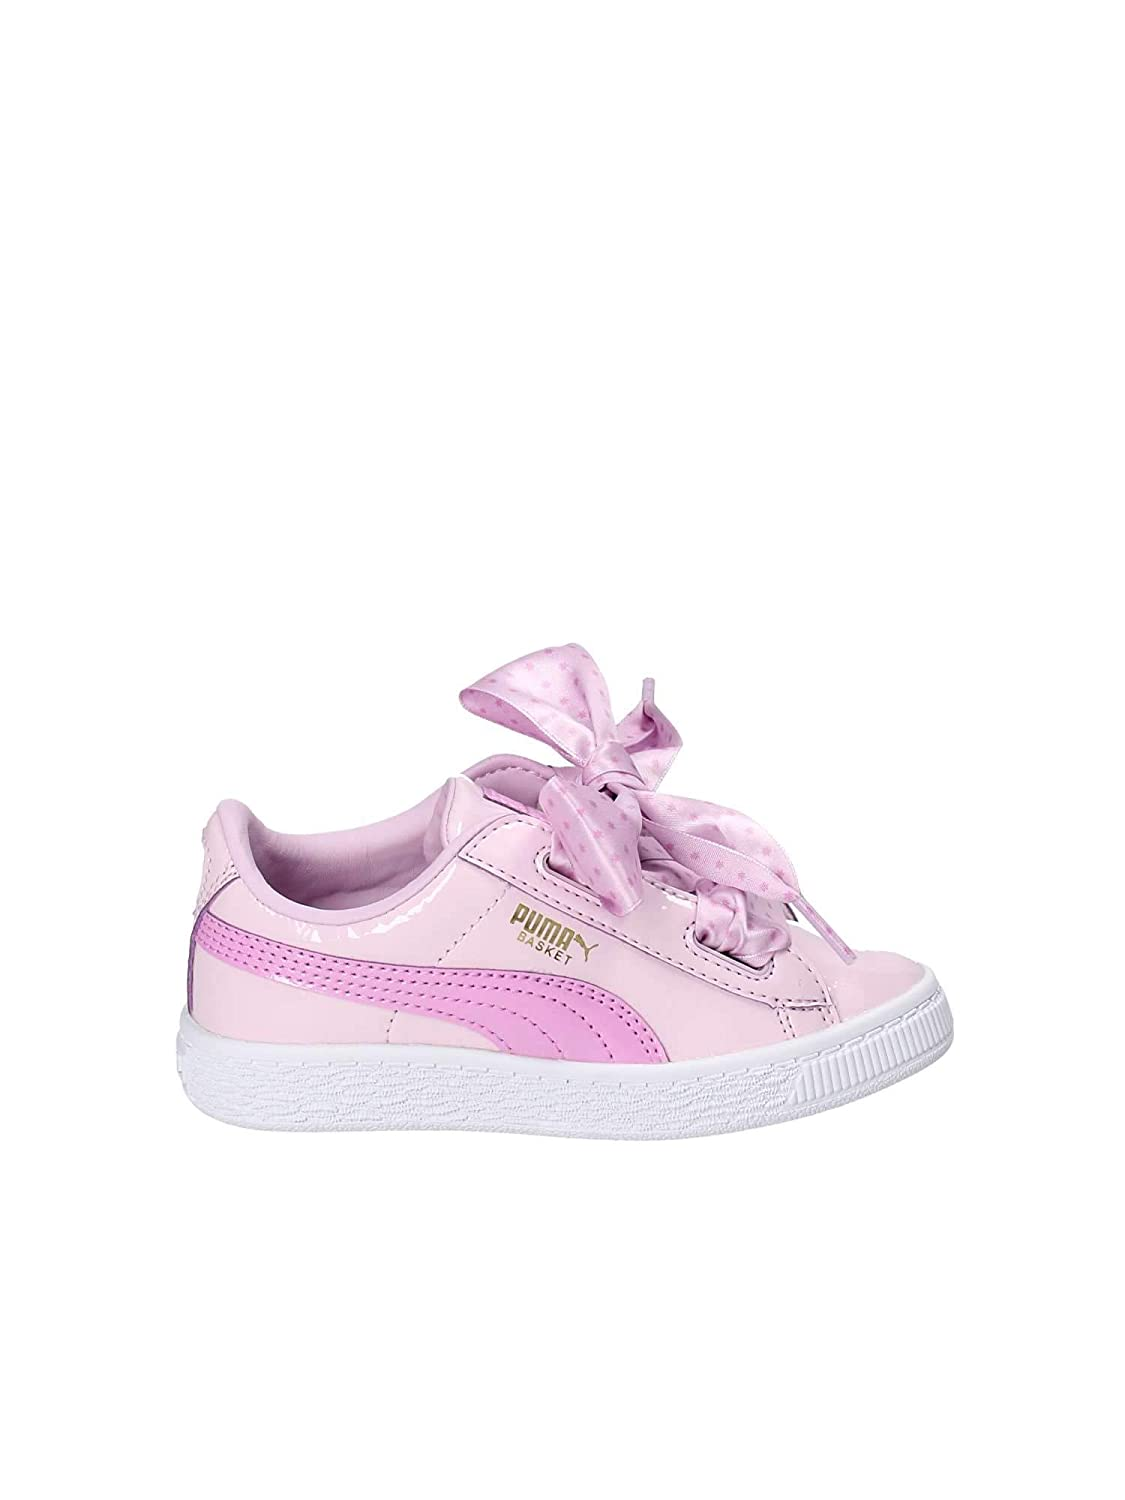 Stars 367821 Basket Fille 1541622510 Basses Ps Puma Sneakers Heart AZW0qAwE